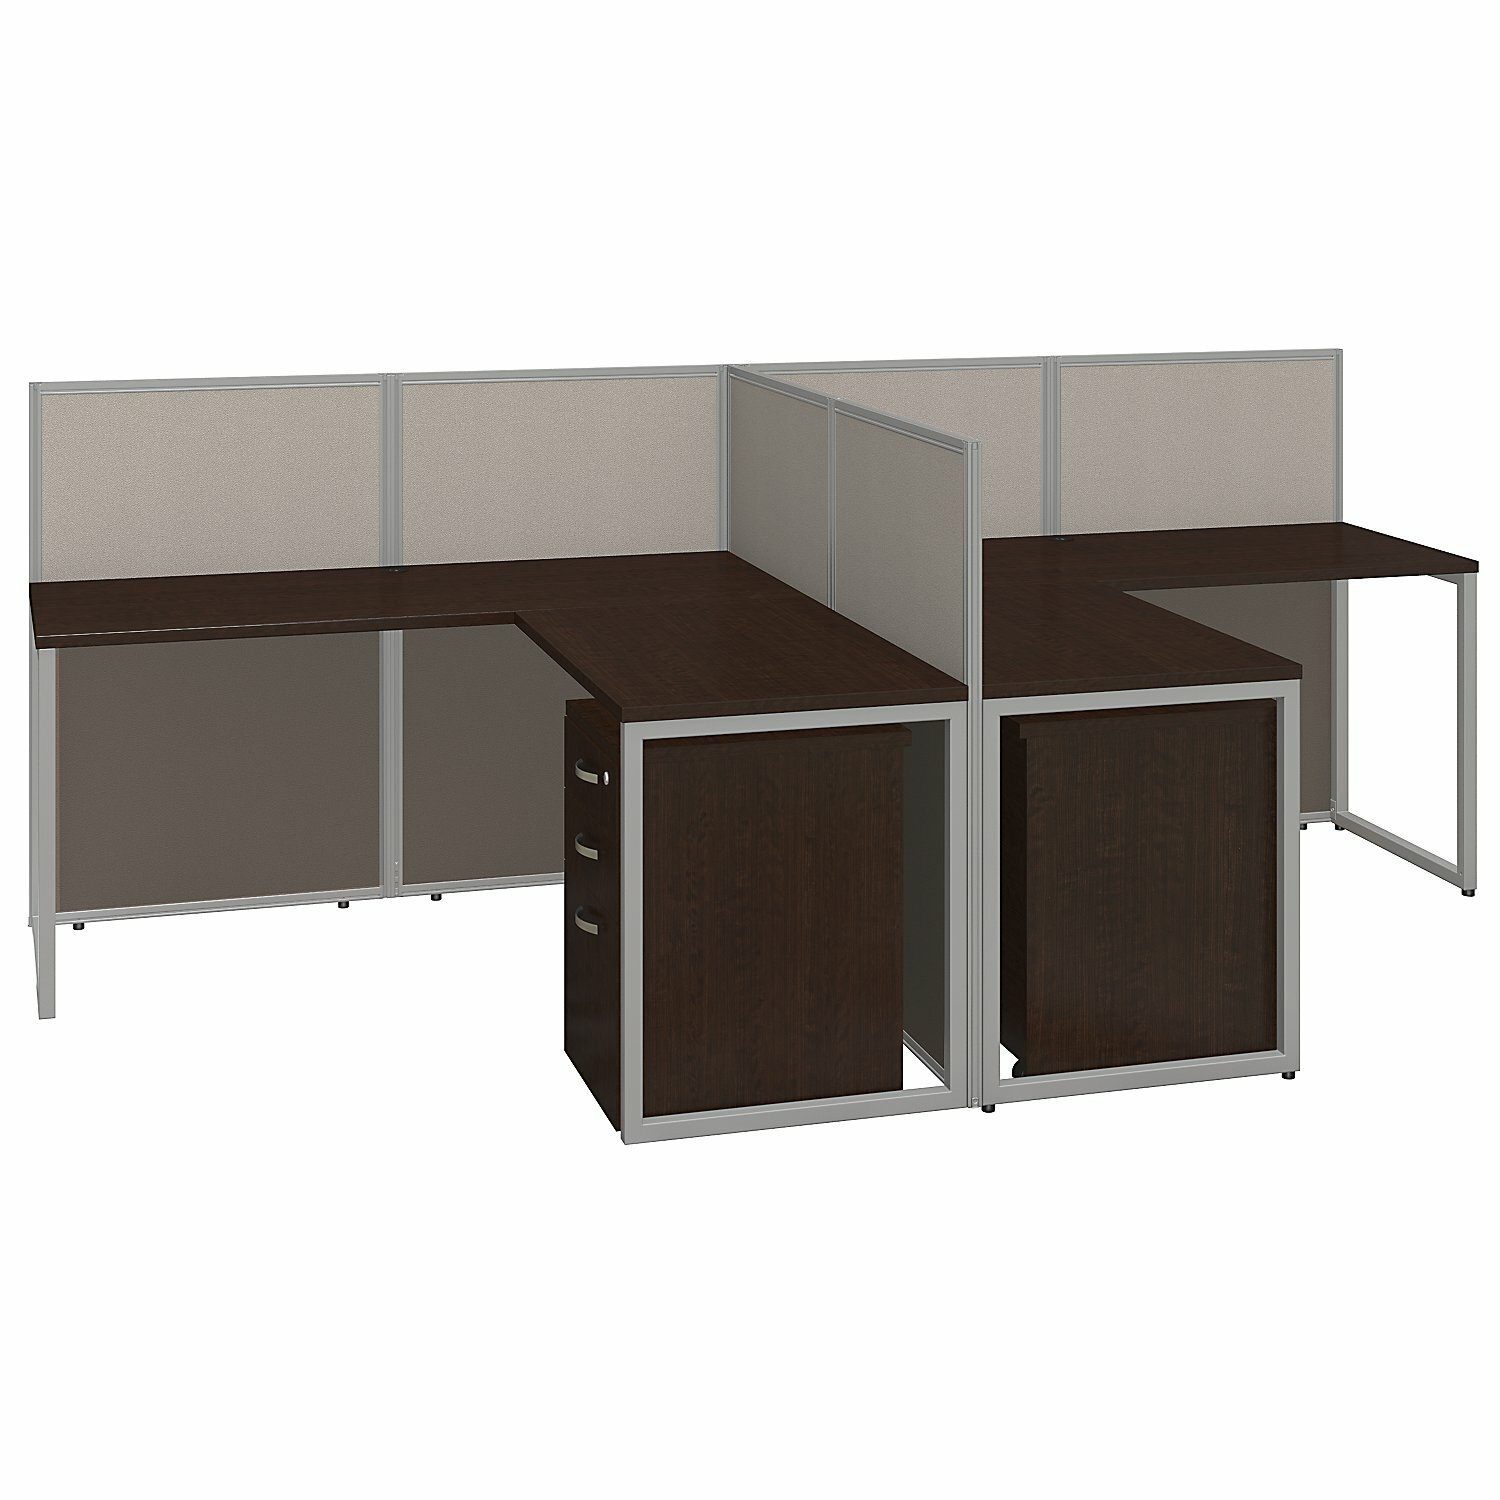 Bush office furniture bush momentum commercial furniture for Commercial furniture